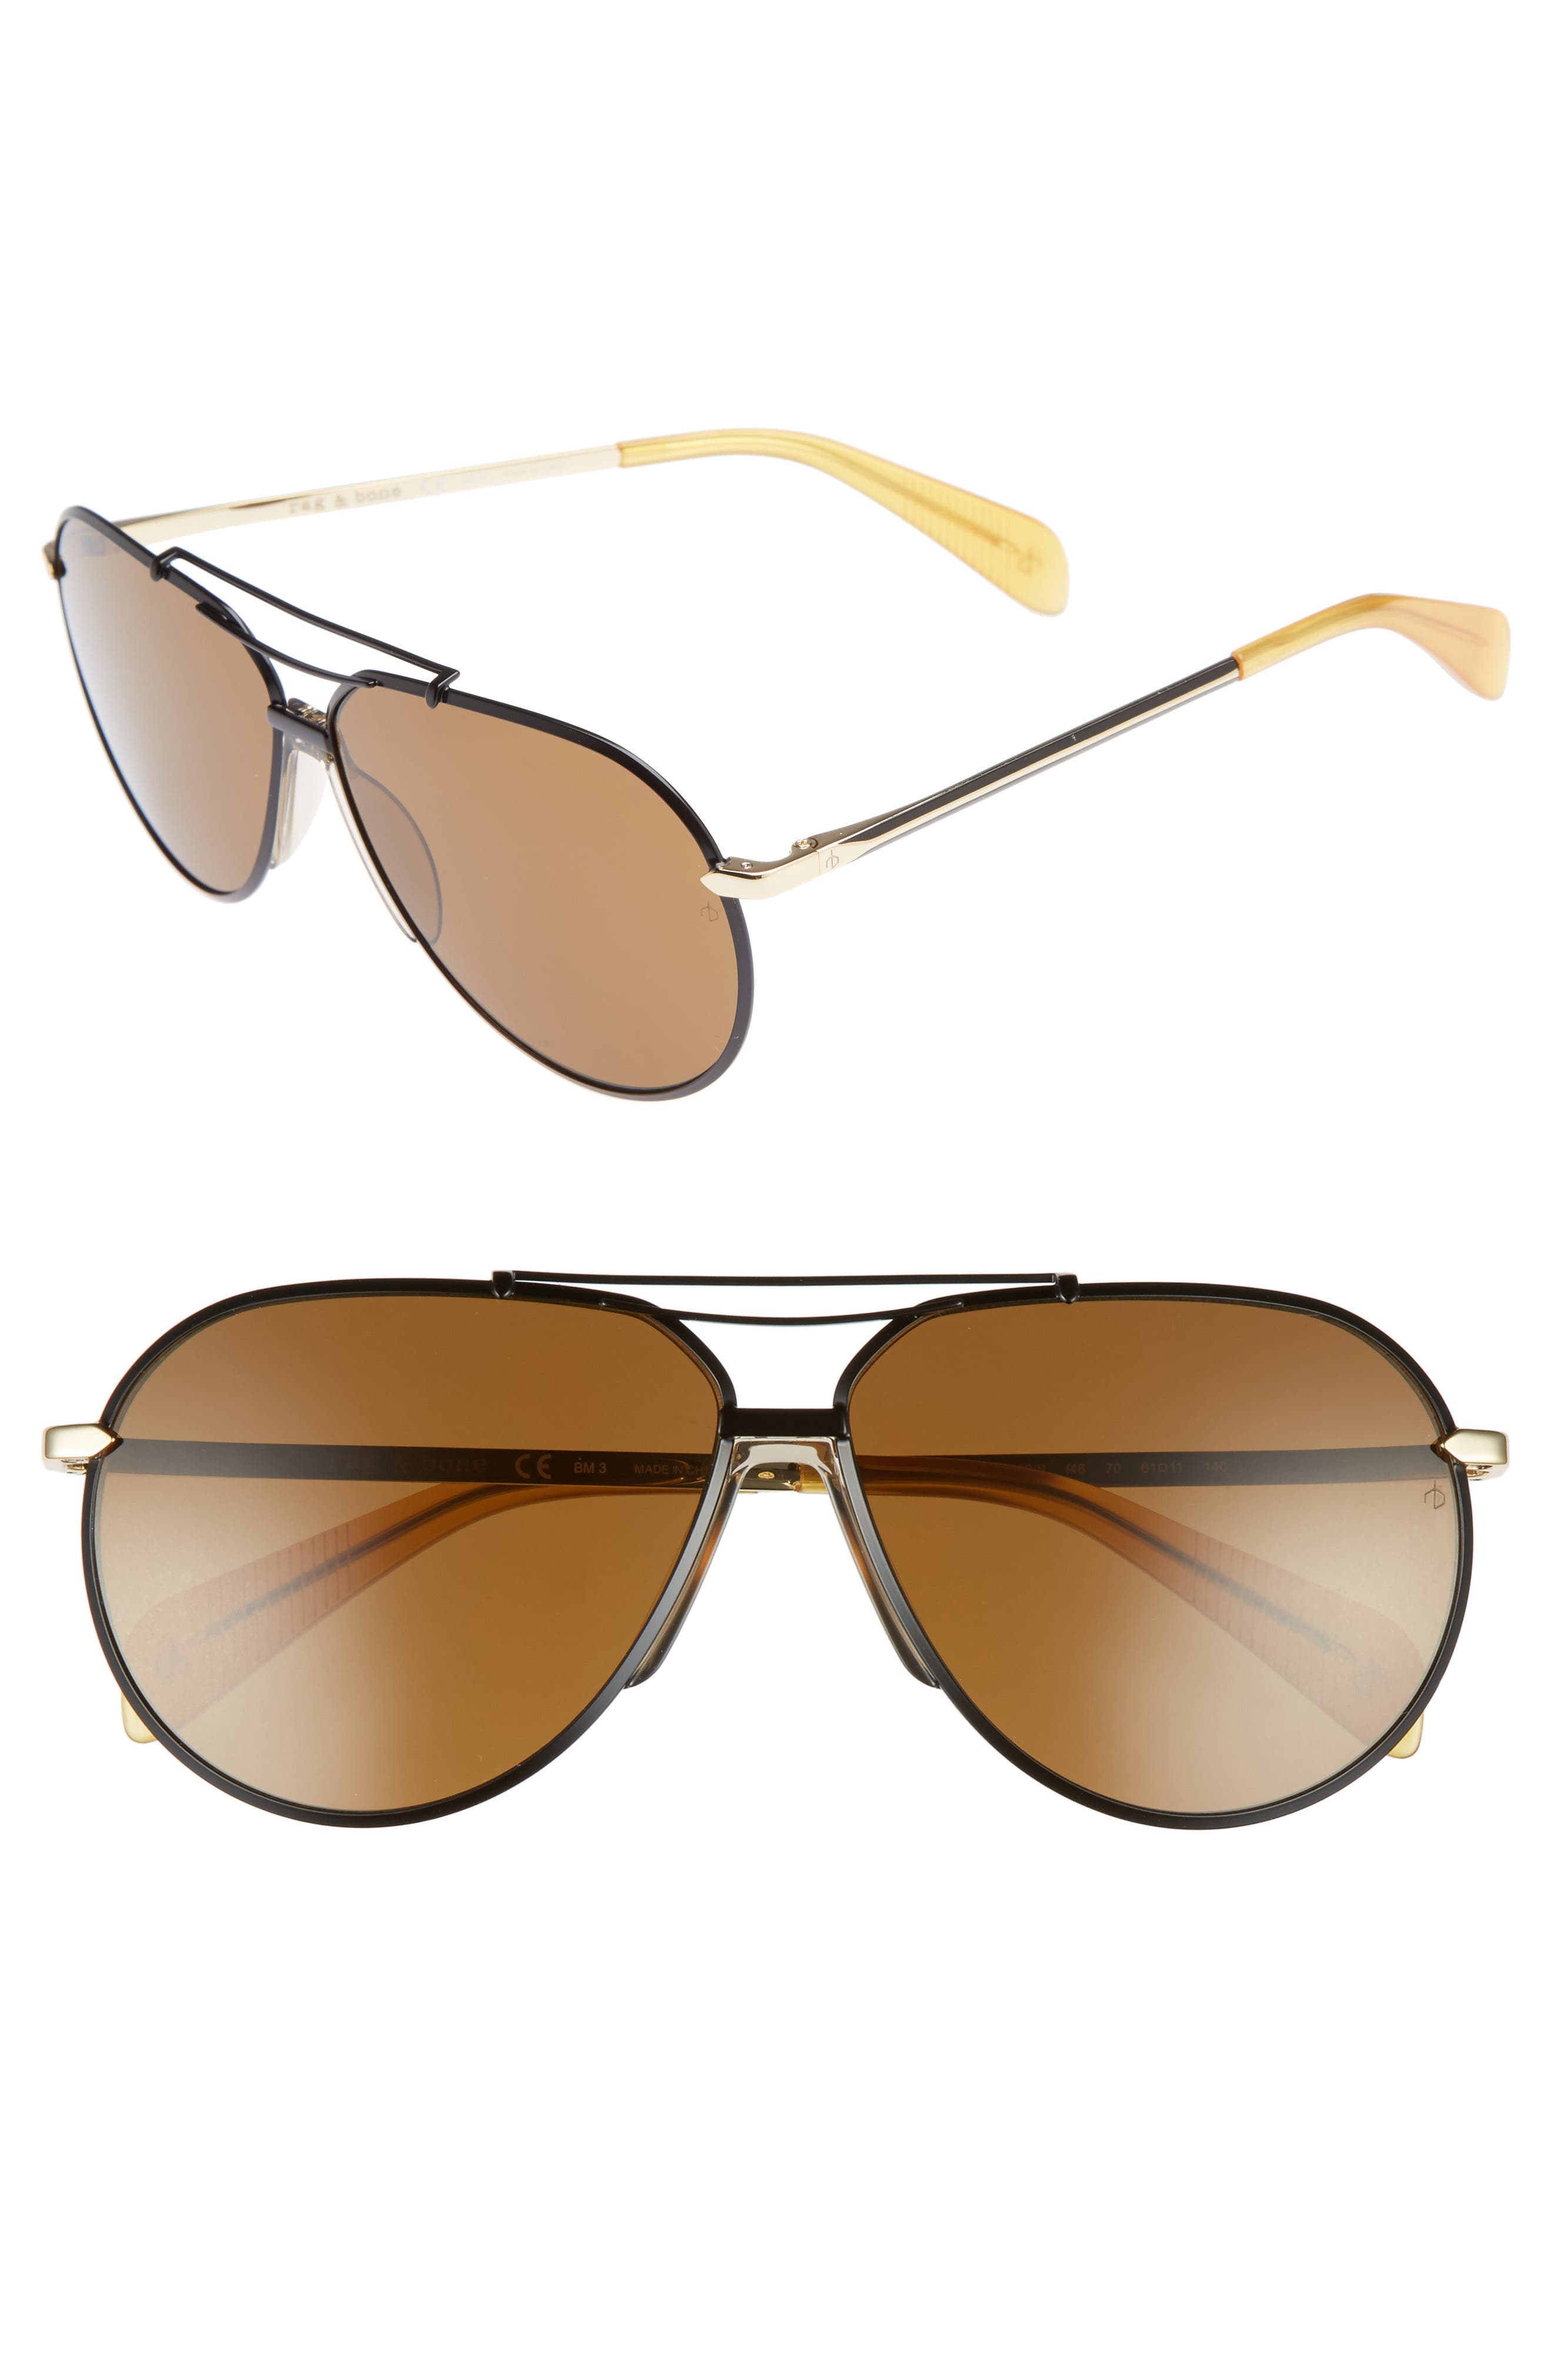 61mm Aviator Sunglasses,                         Main,                         color, BLACK GOLD